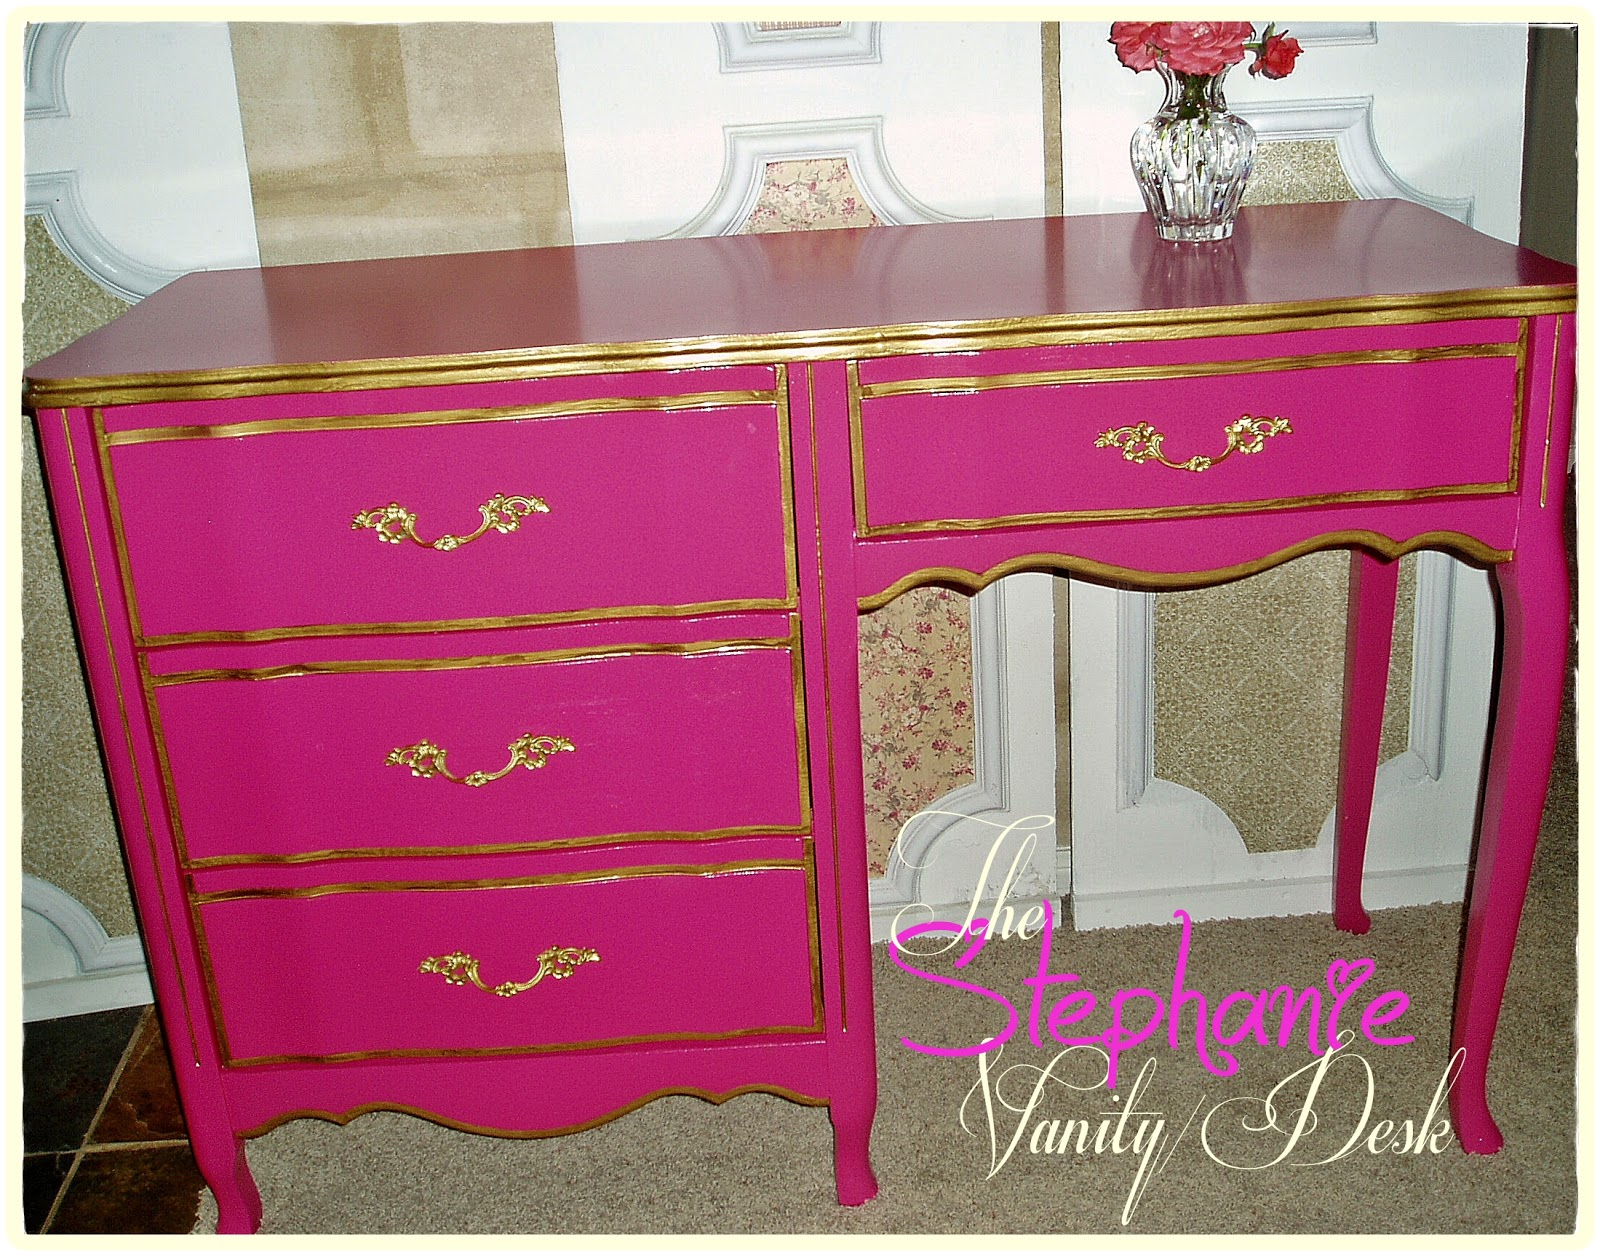 Fuchsia and gold Painted Furniture Ideas